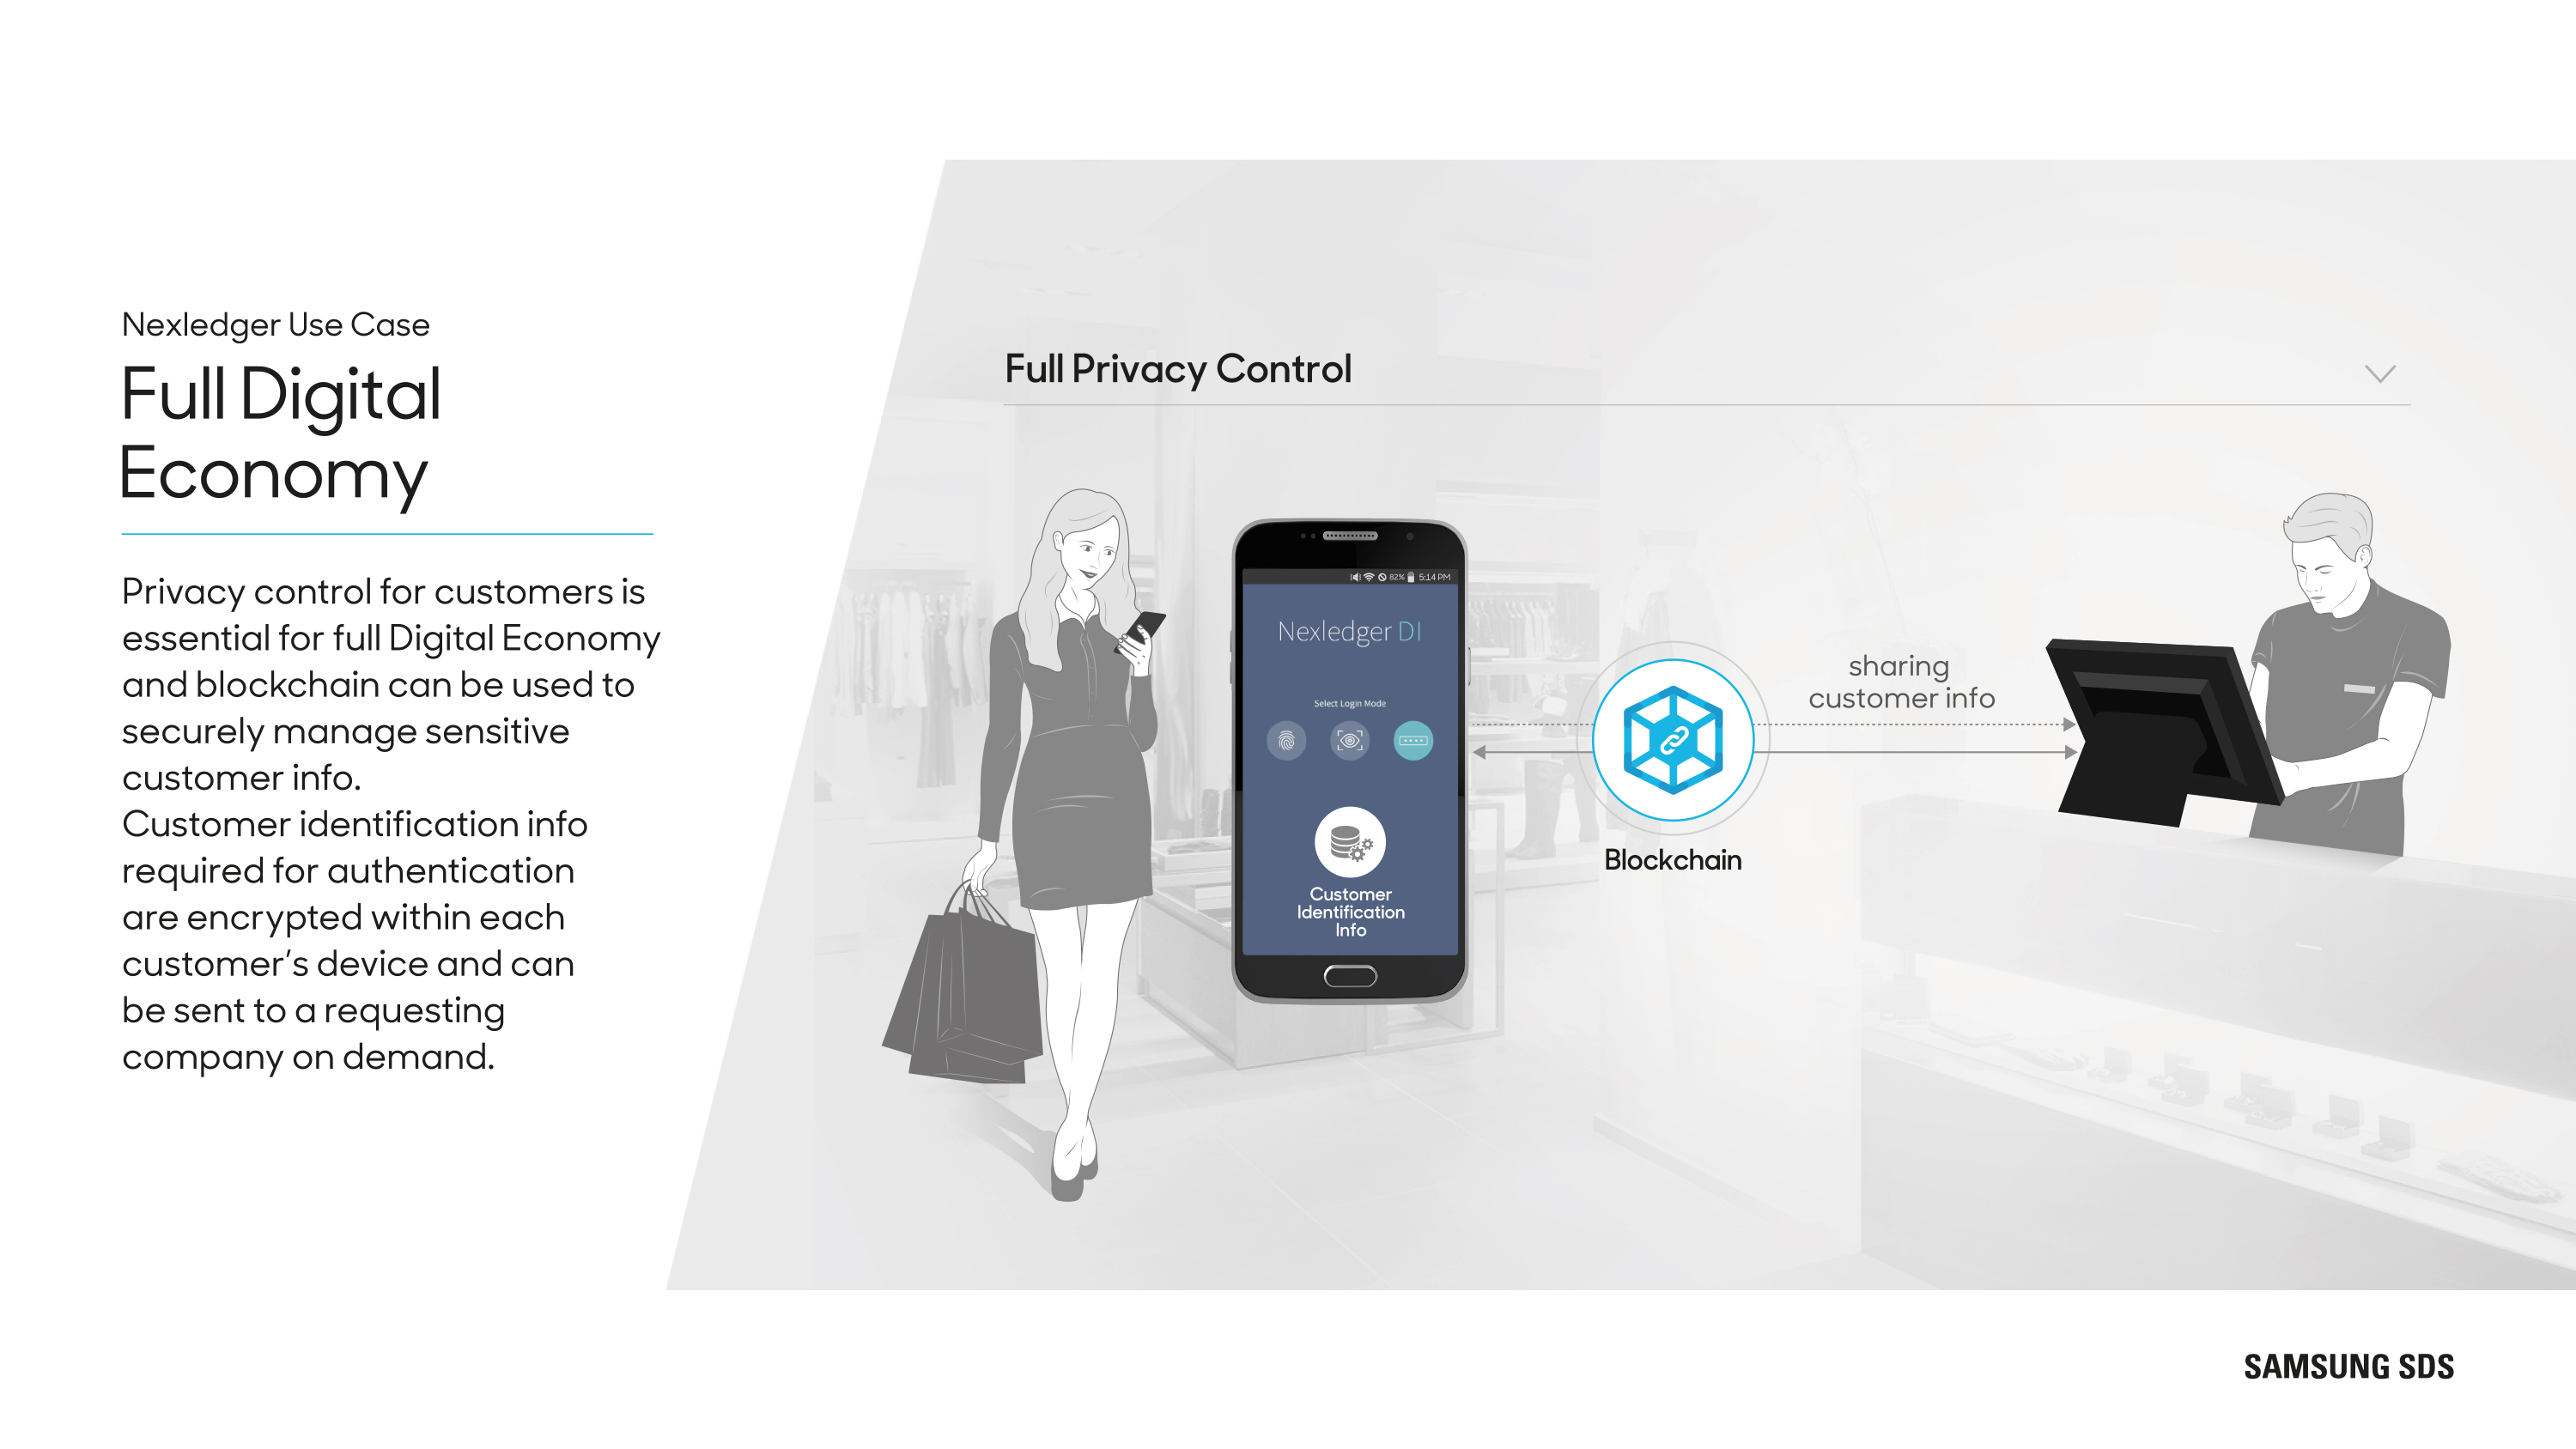 Full Digital Economy Privacy control for customers is essential for full Digital Economy and blockchain can be used to securely manage sensitive customer info. Customer identification info required for authentication are encrypted within each customer's device and can be sent to a requesting company on demand.